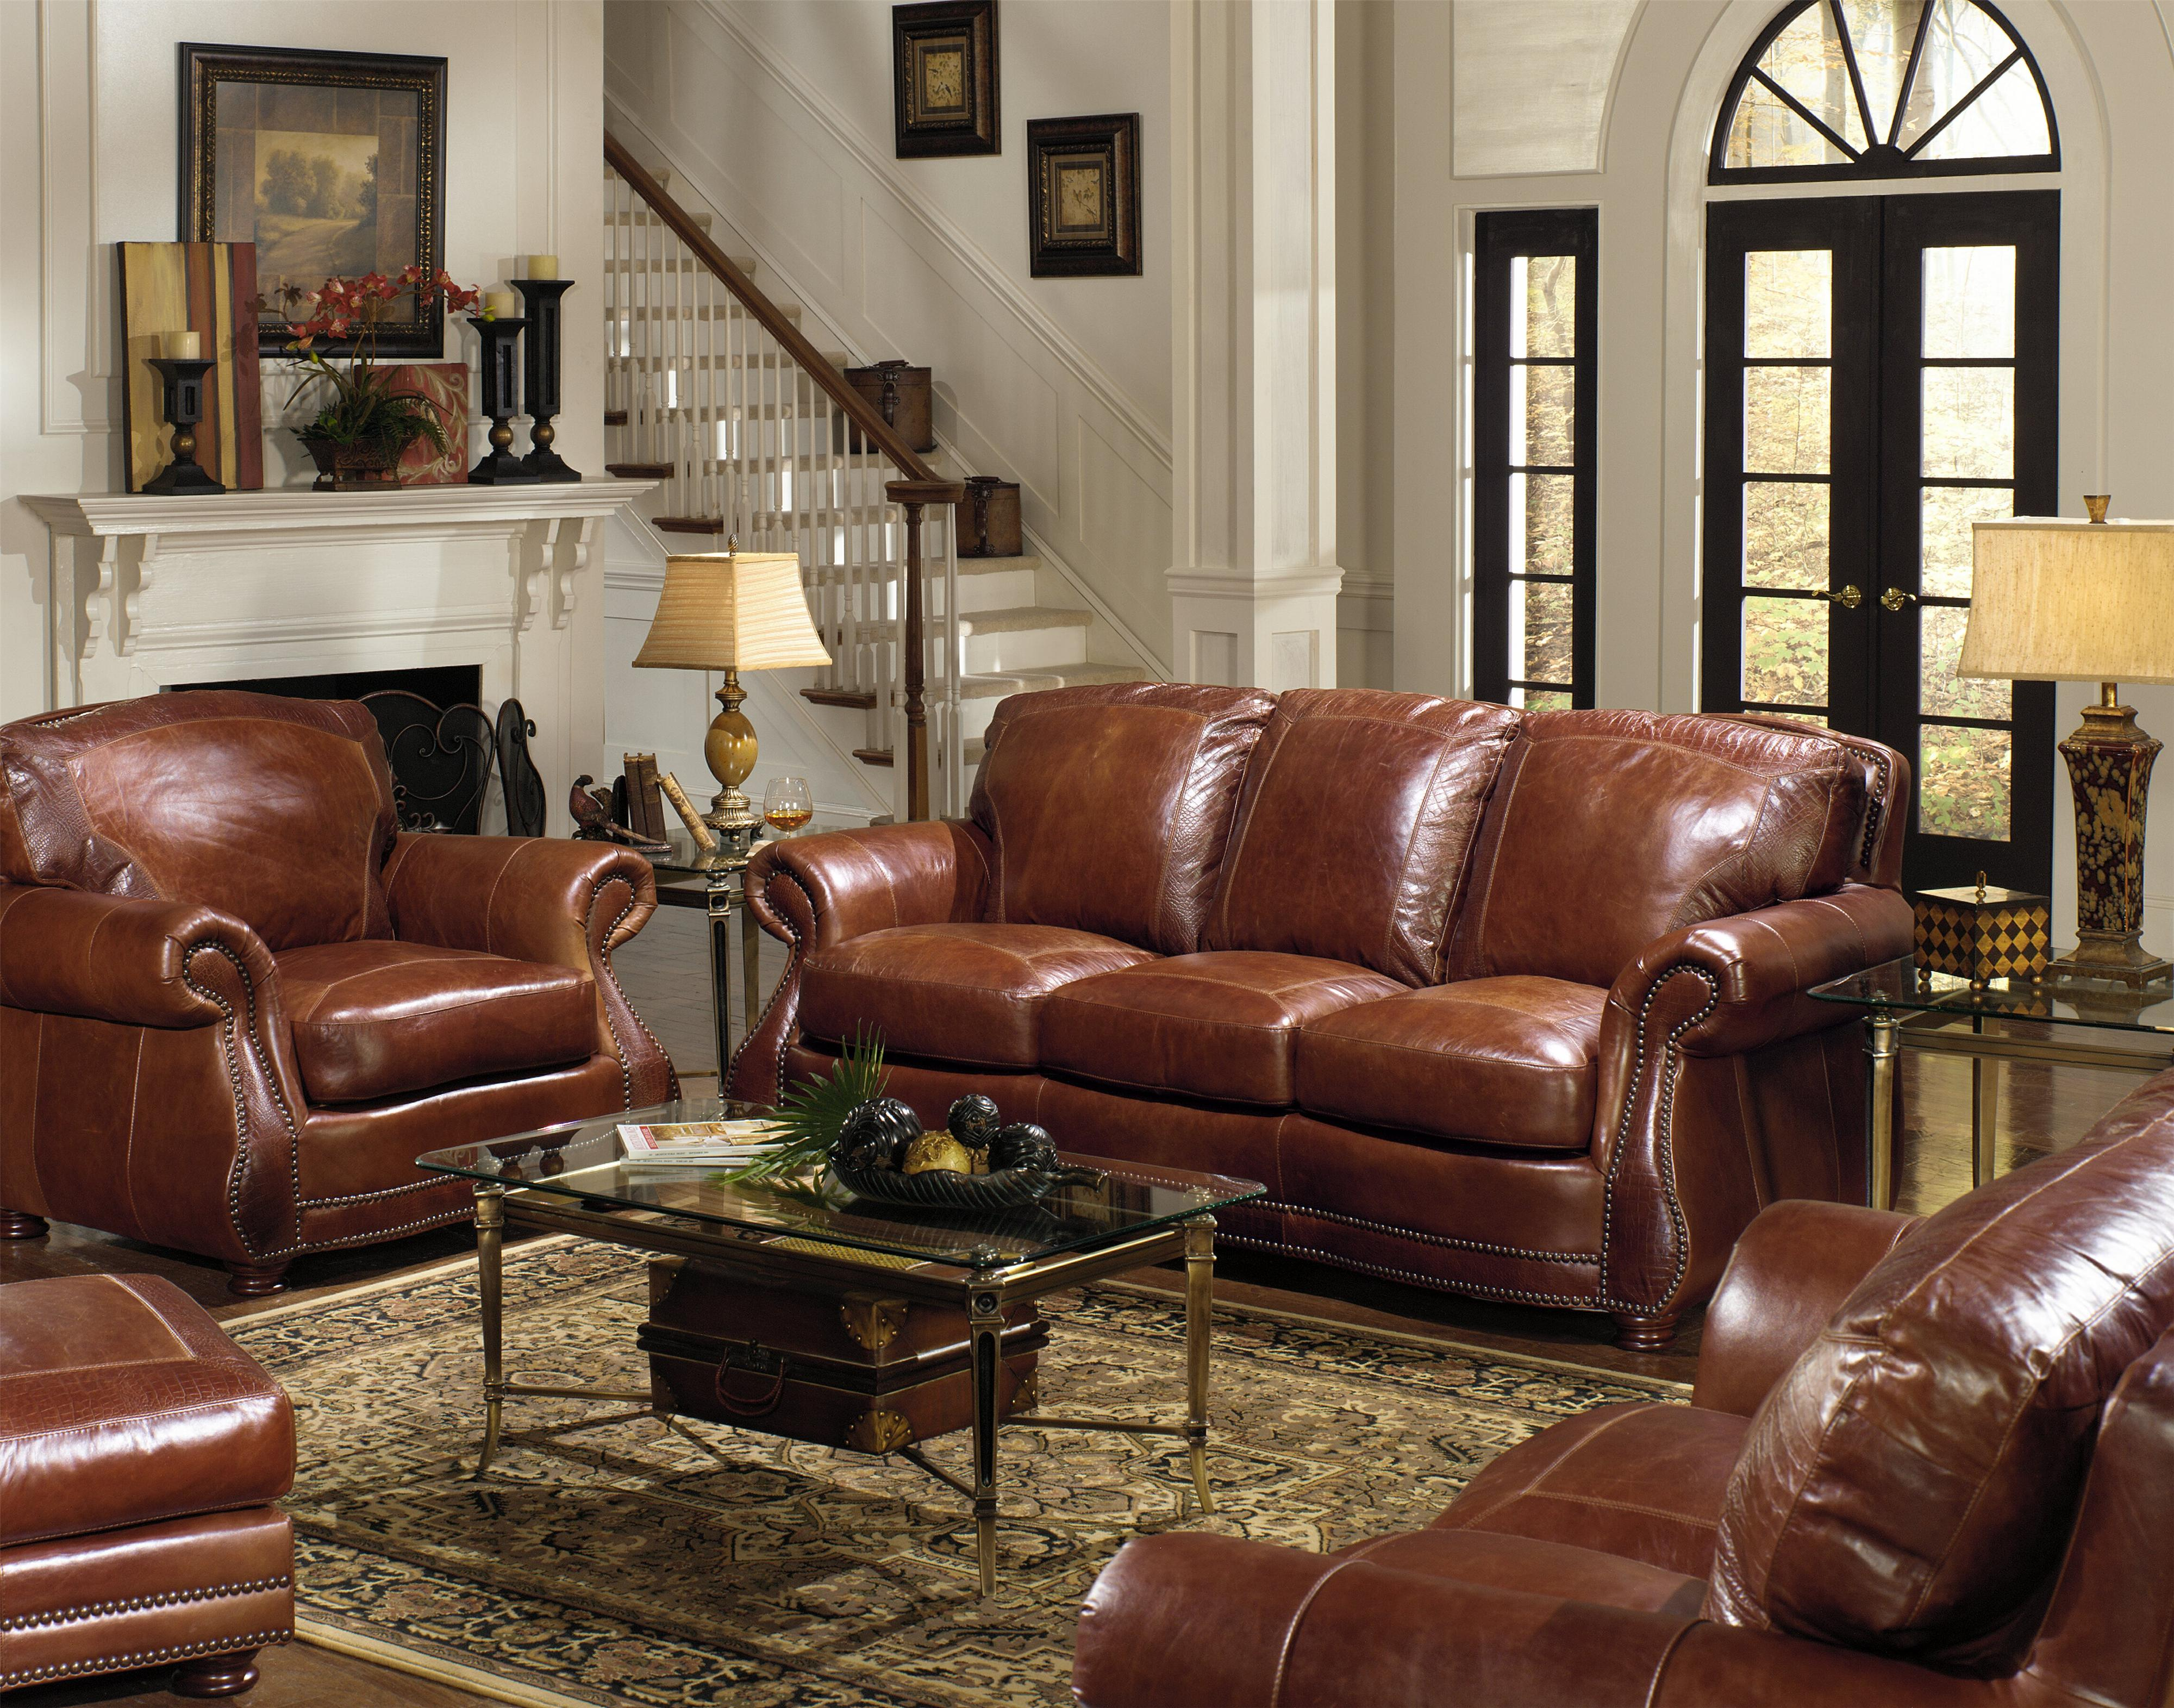 Living Room Furniture Made Usa usa premium leather 9055 traditional roll arm sofa w/ alligator